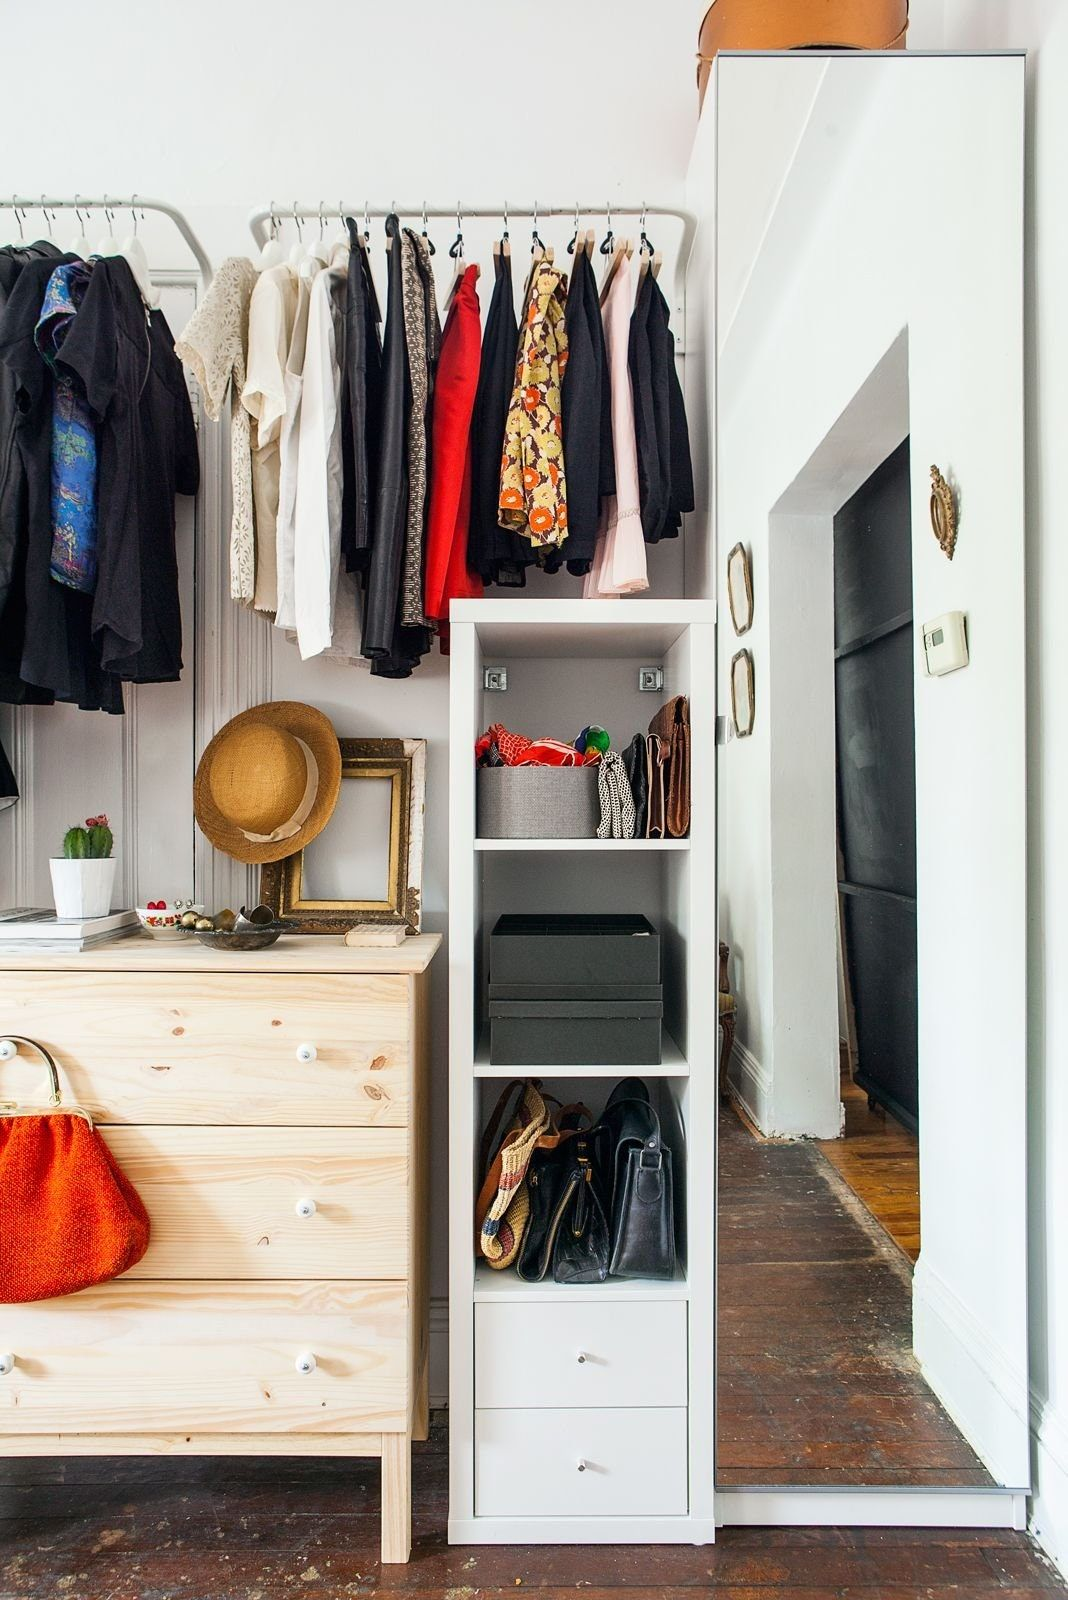 5 Real Life Wardrobe Storage Solutions From Apartments With No Closets